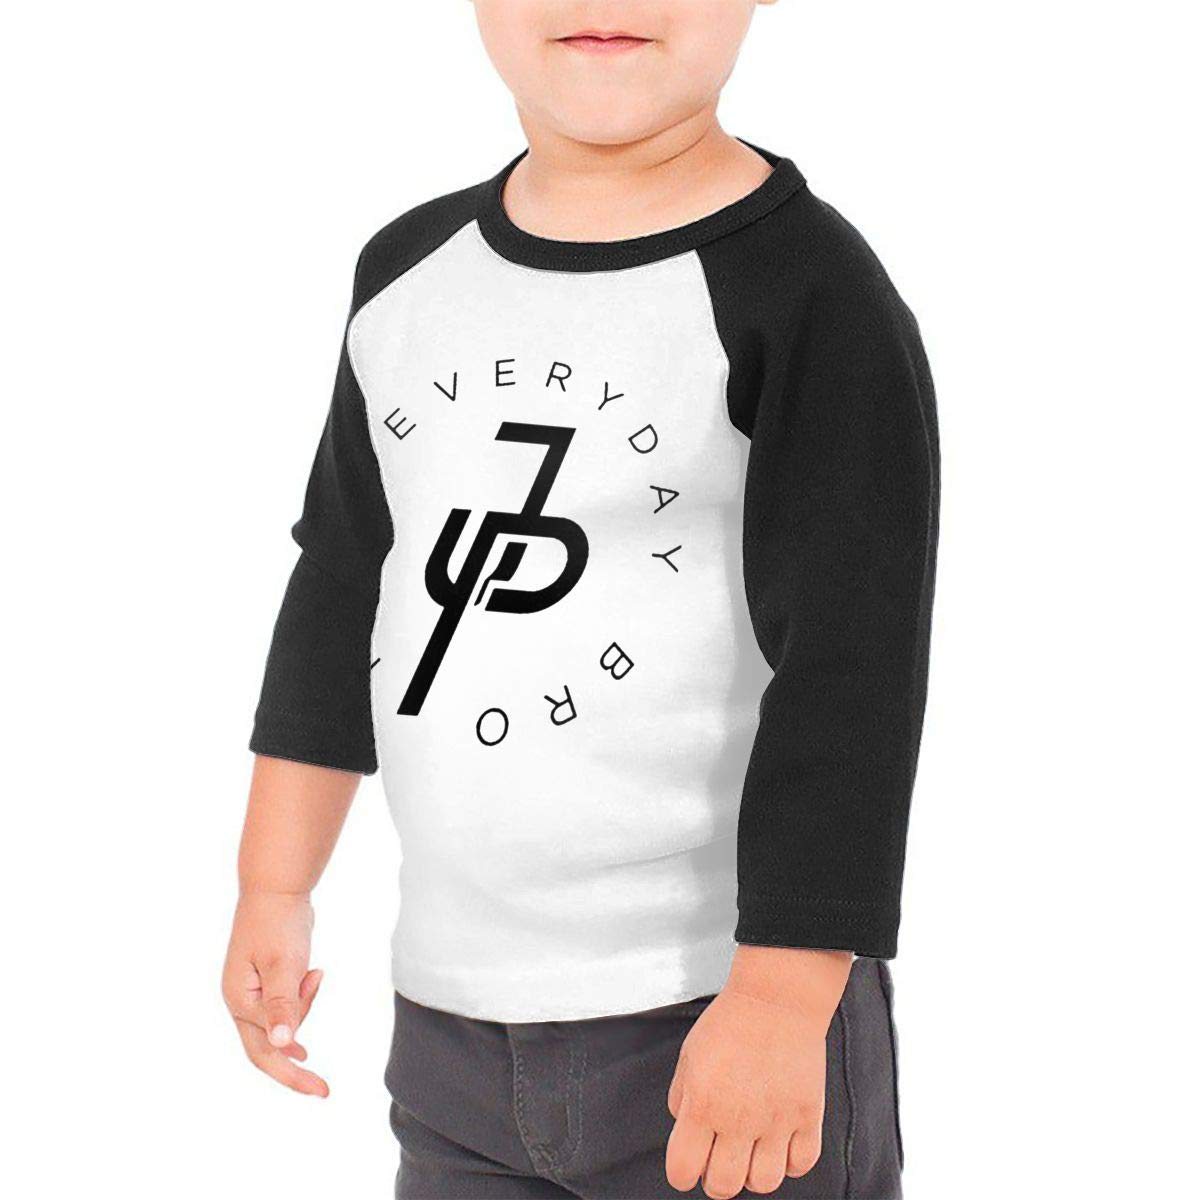 Atcco Jake Paul S 34 Sleeve Rags Baseball T Shirt For 26t And Girls